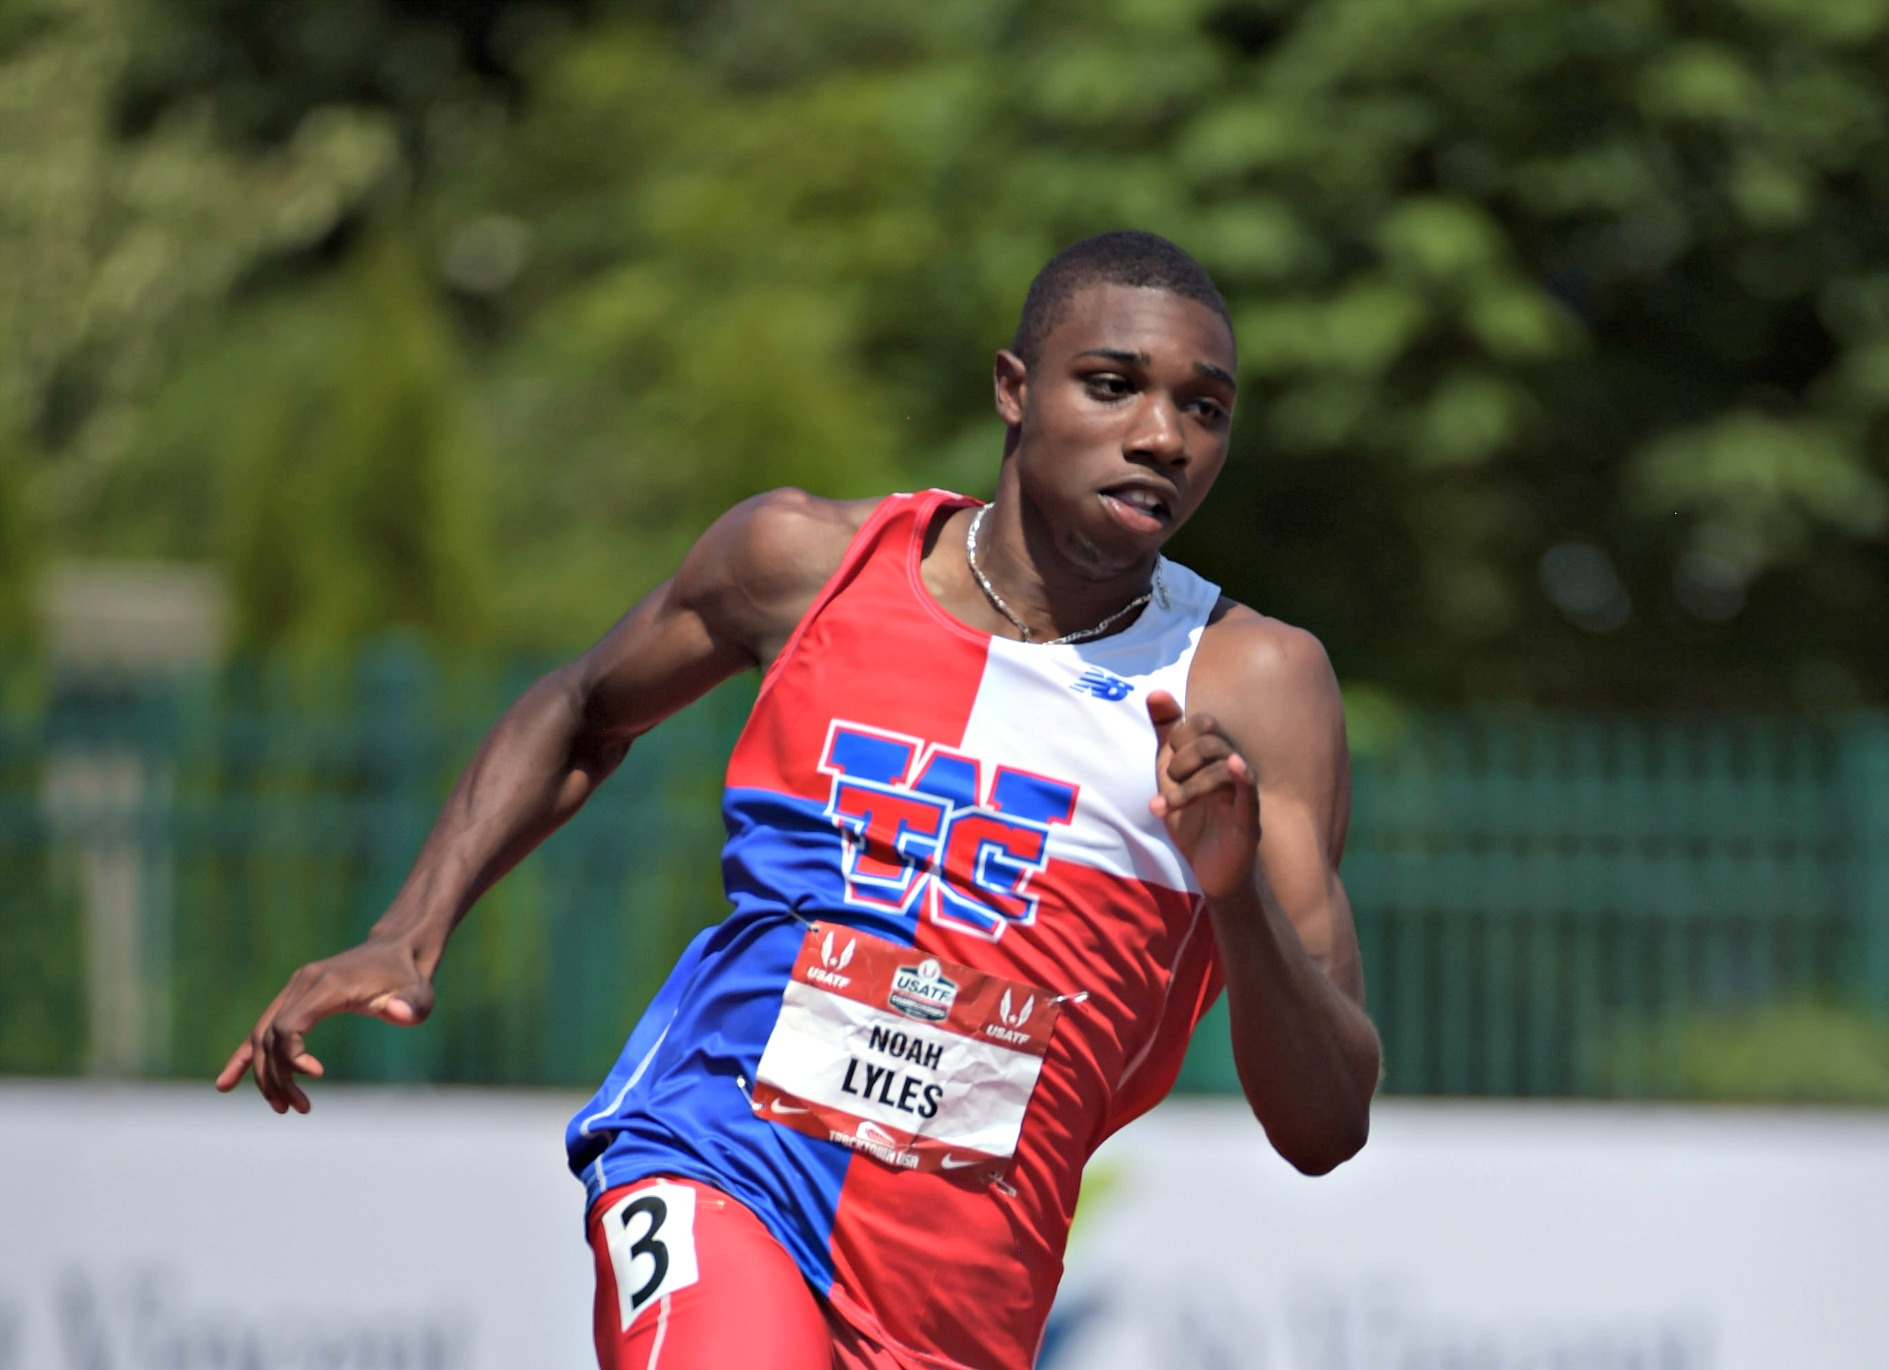 Jun 27, 2015; Eugene, OR, USA; Noah Lyles wins the junior 200m in 20.18 in the 2015 USA Championships at  Hayward Field. Mandatory Credit: Kirby Lee-USA TODAY Sports